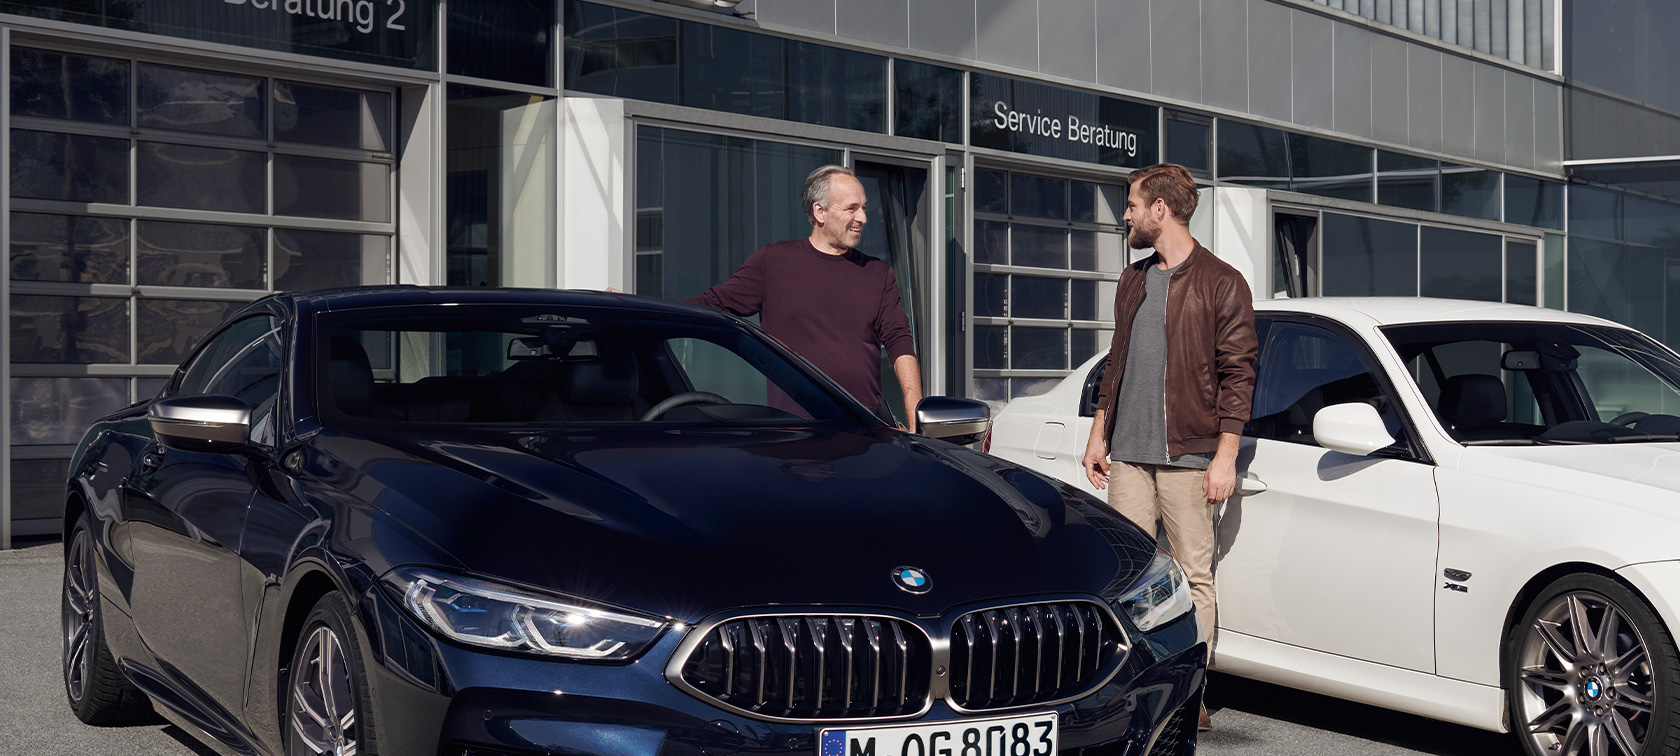 Original BMW Service BMW 8 Series Coupé BMW 4 Series Coupé satisfied BMW Service customers